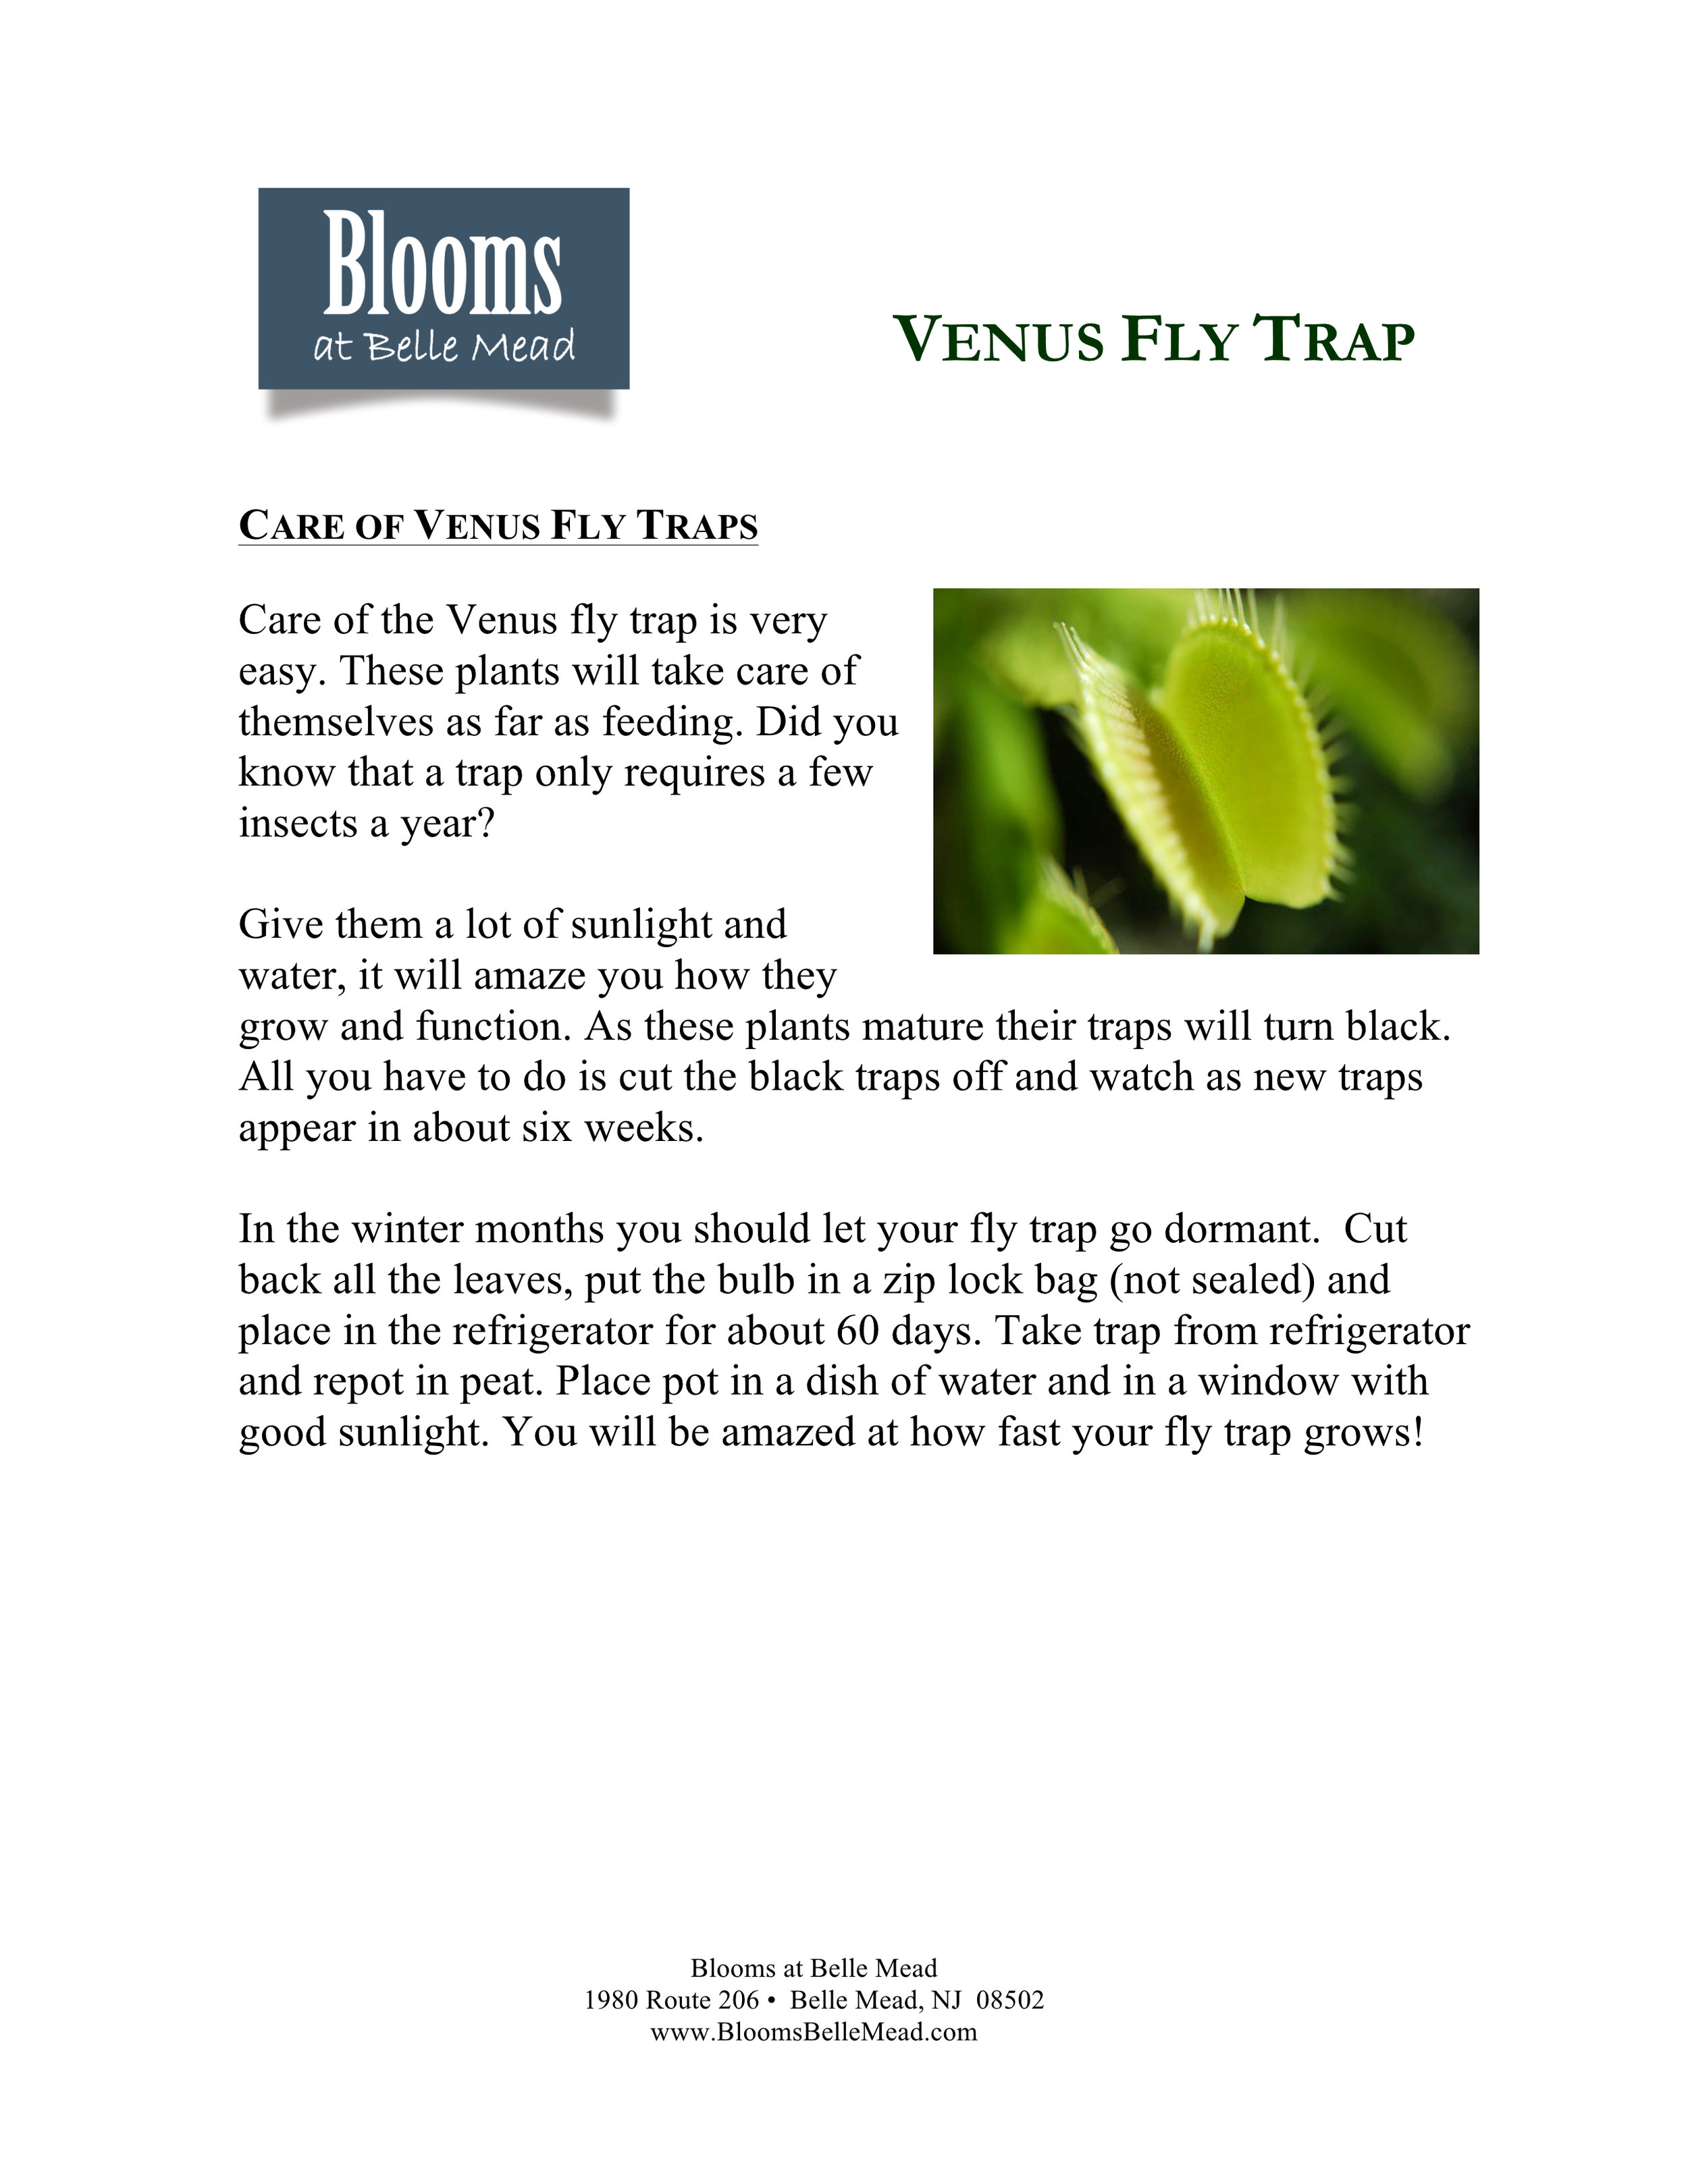 VENUS FLY TRAP CARE